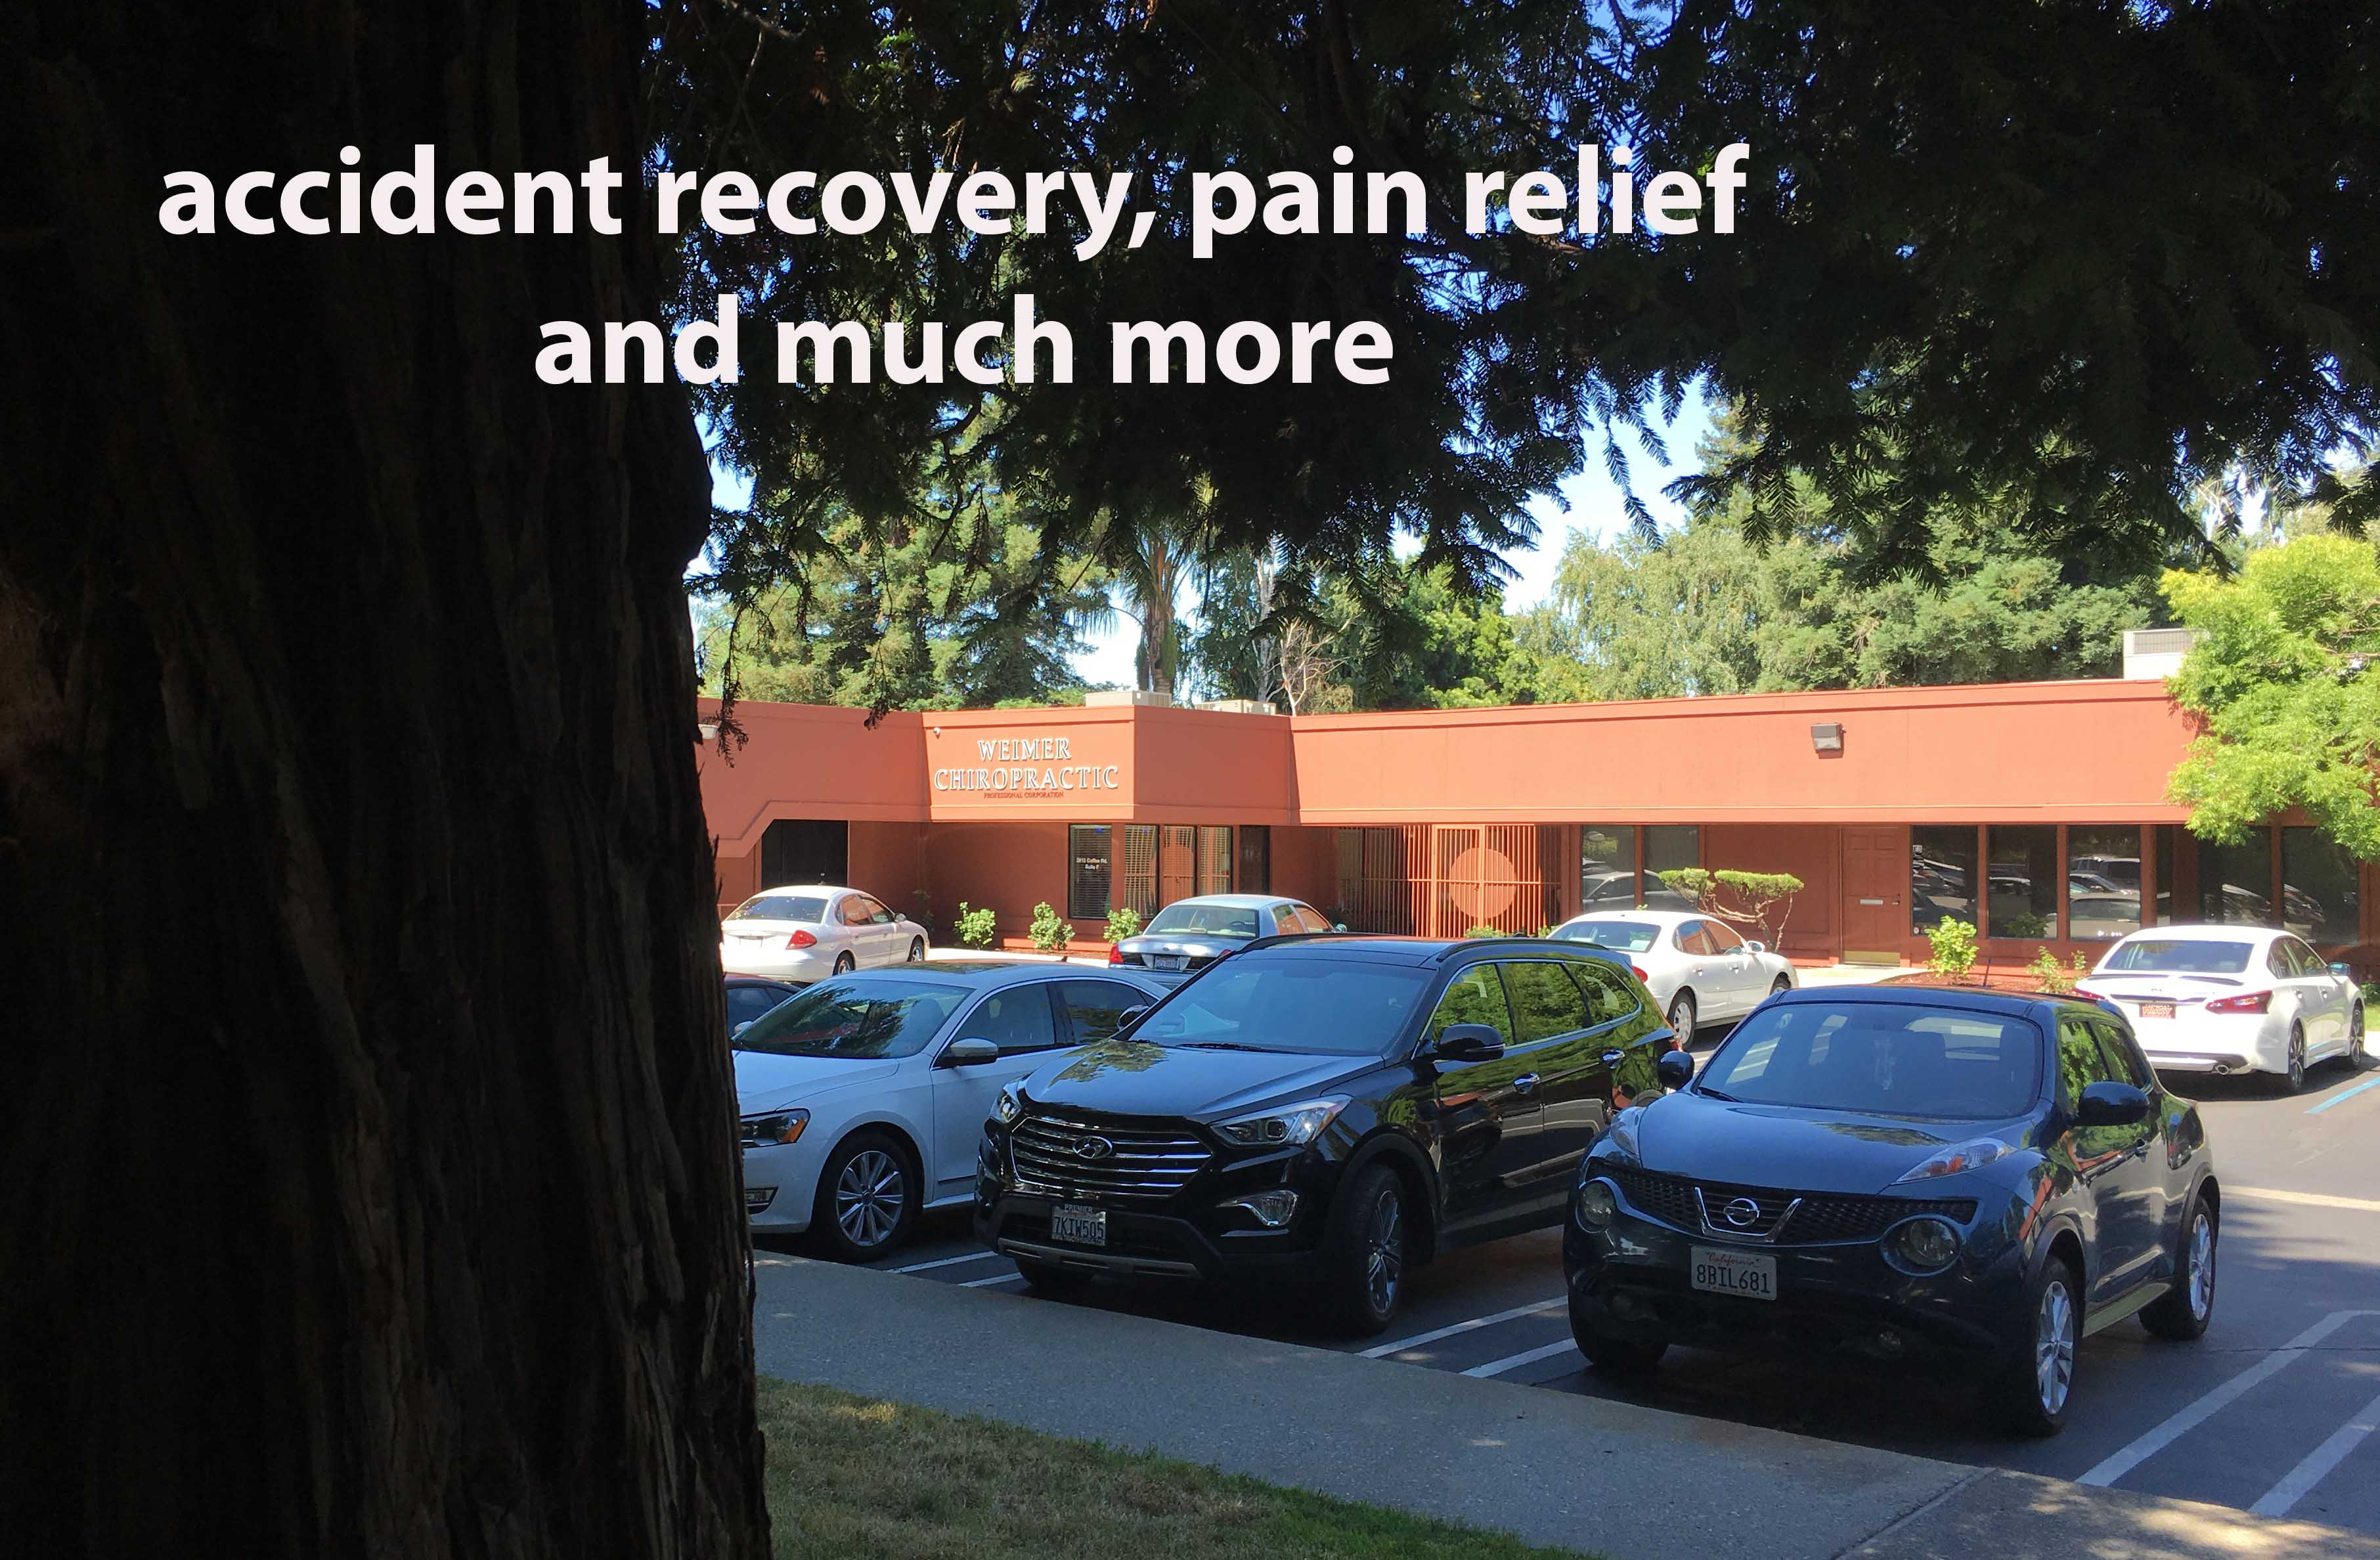 Weimer Chiropractic specializes in accident recovery.